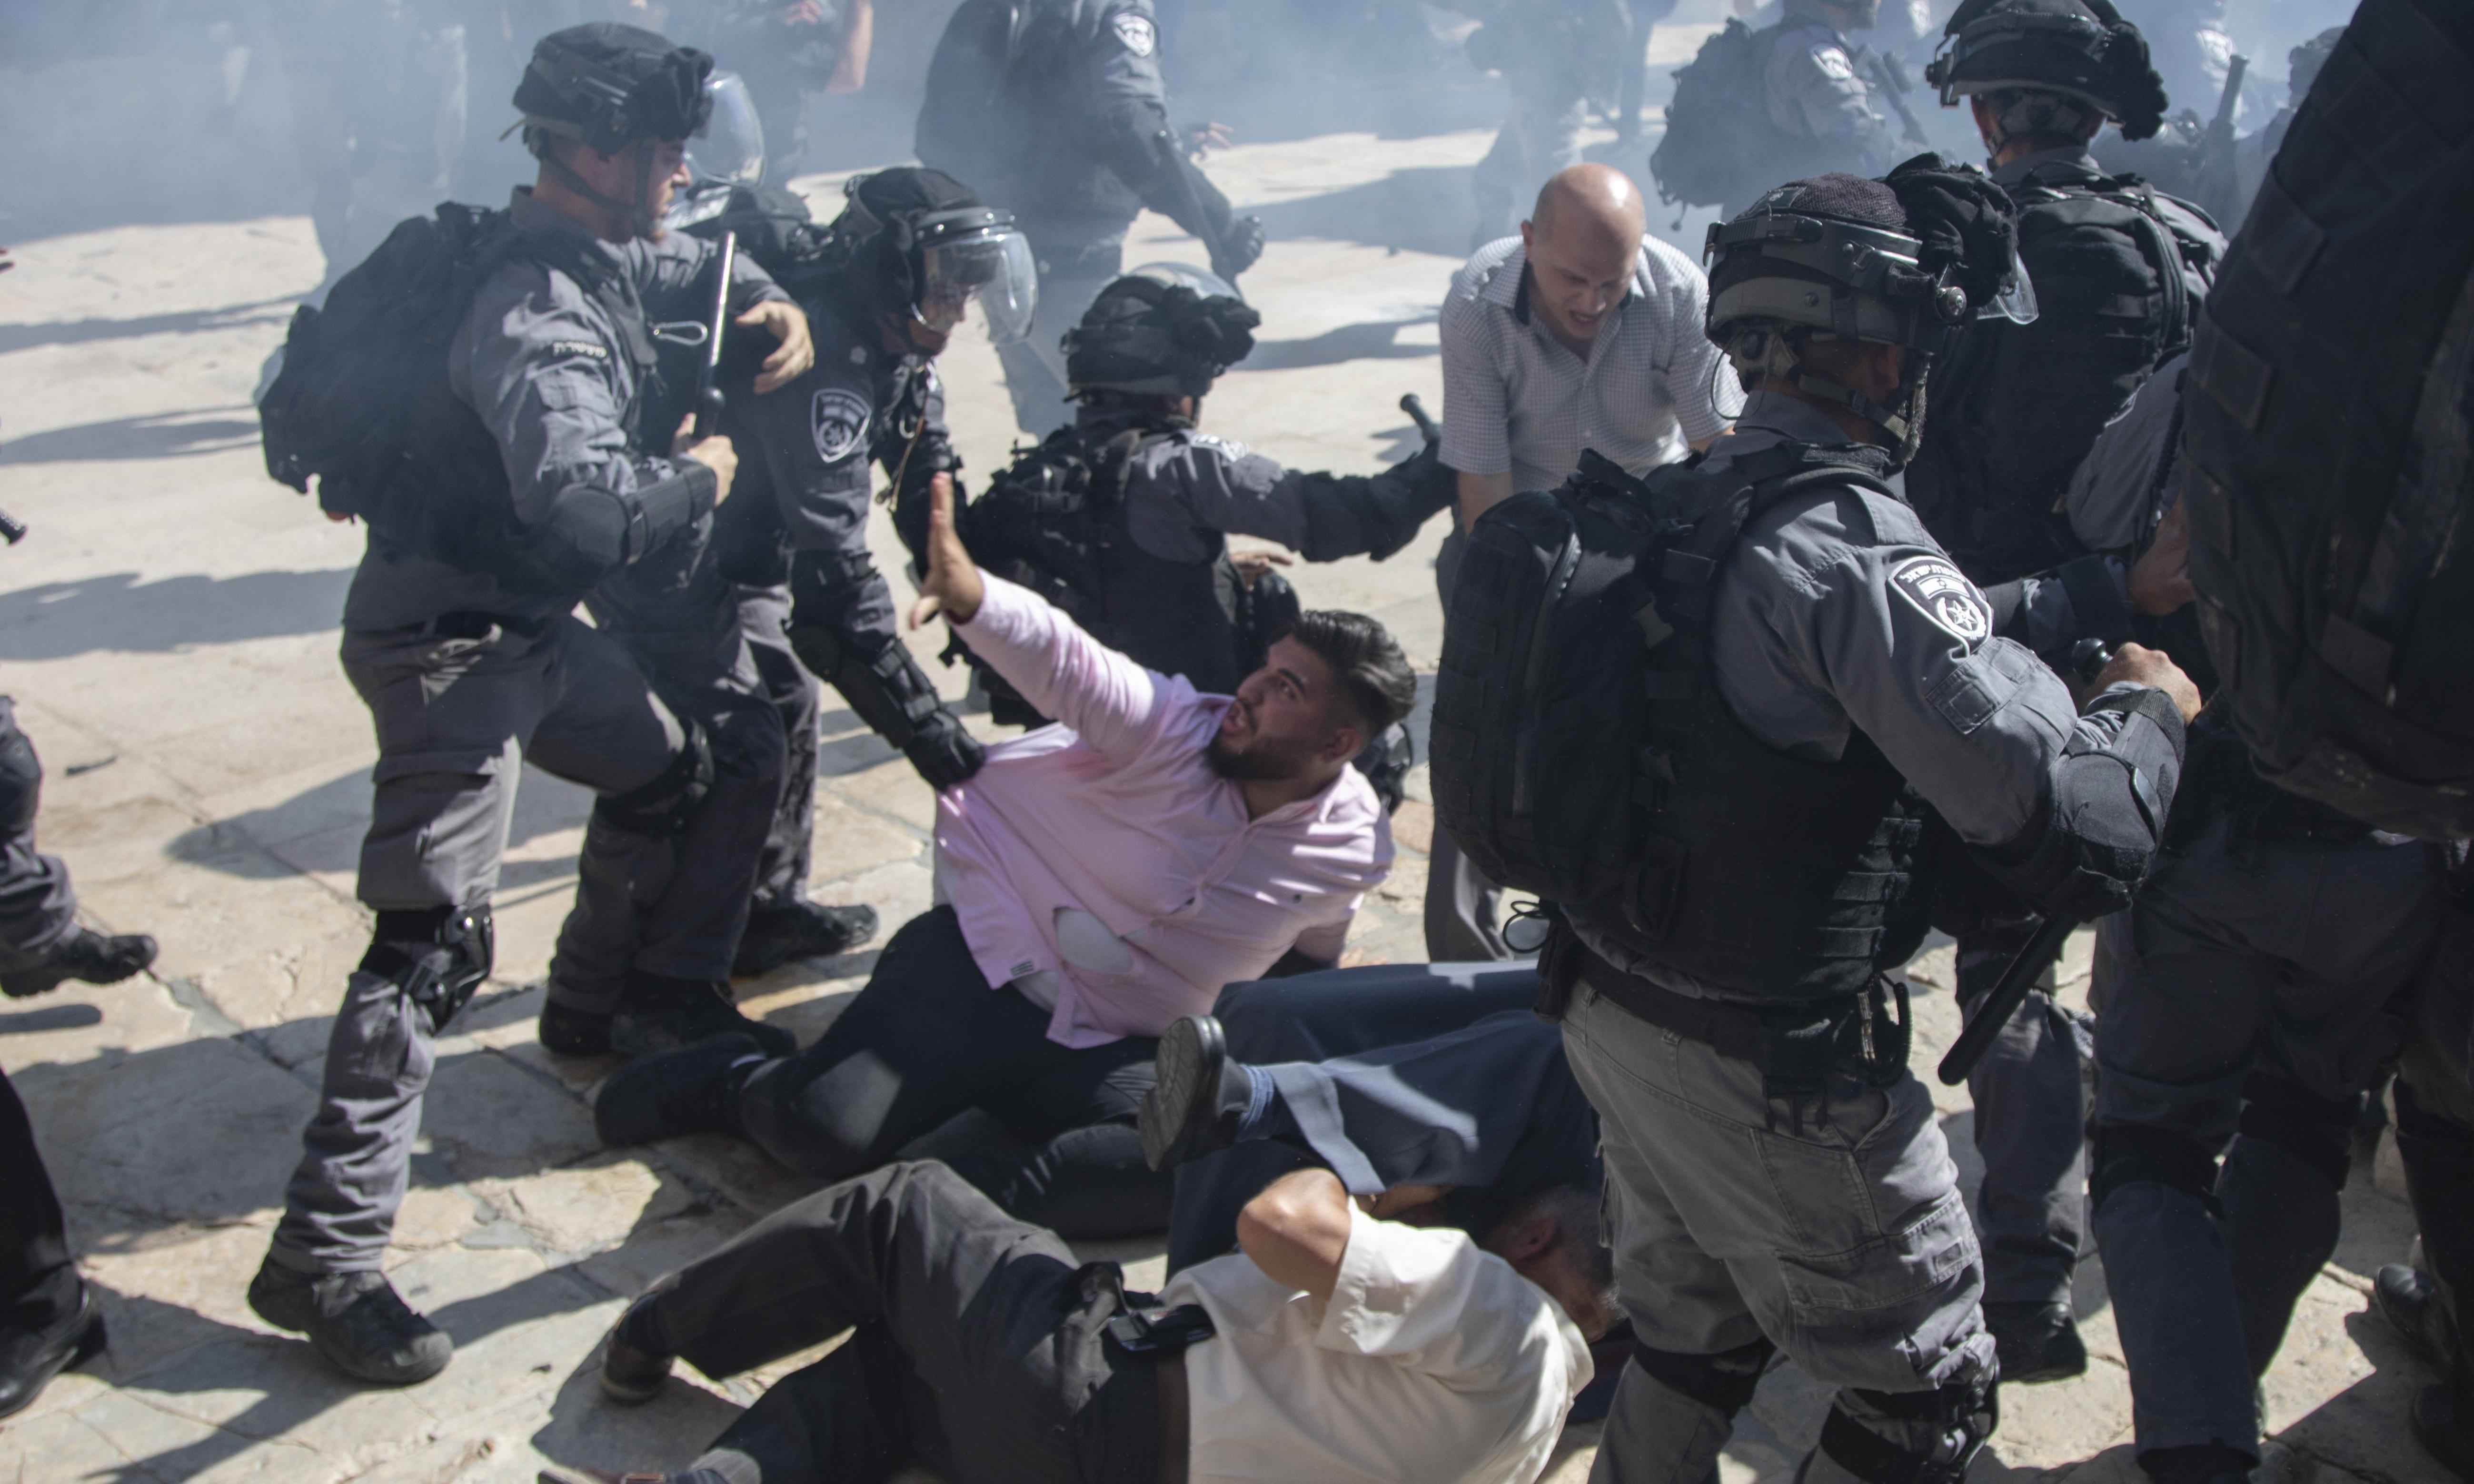 Israeli police clash with Muslim worshippers at Jerusalem holy site